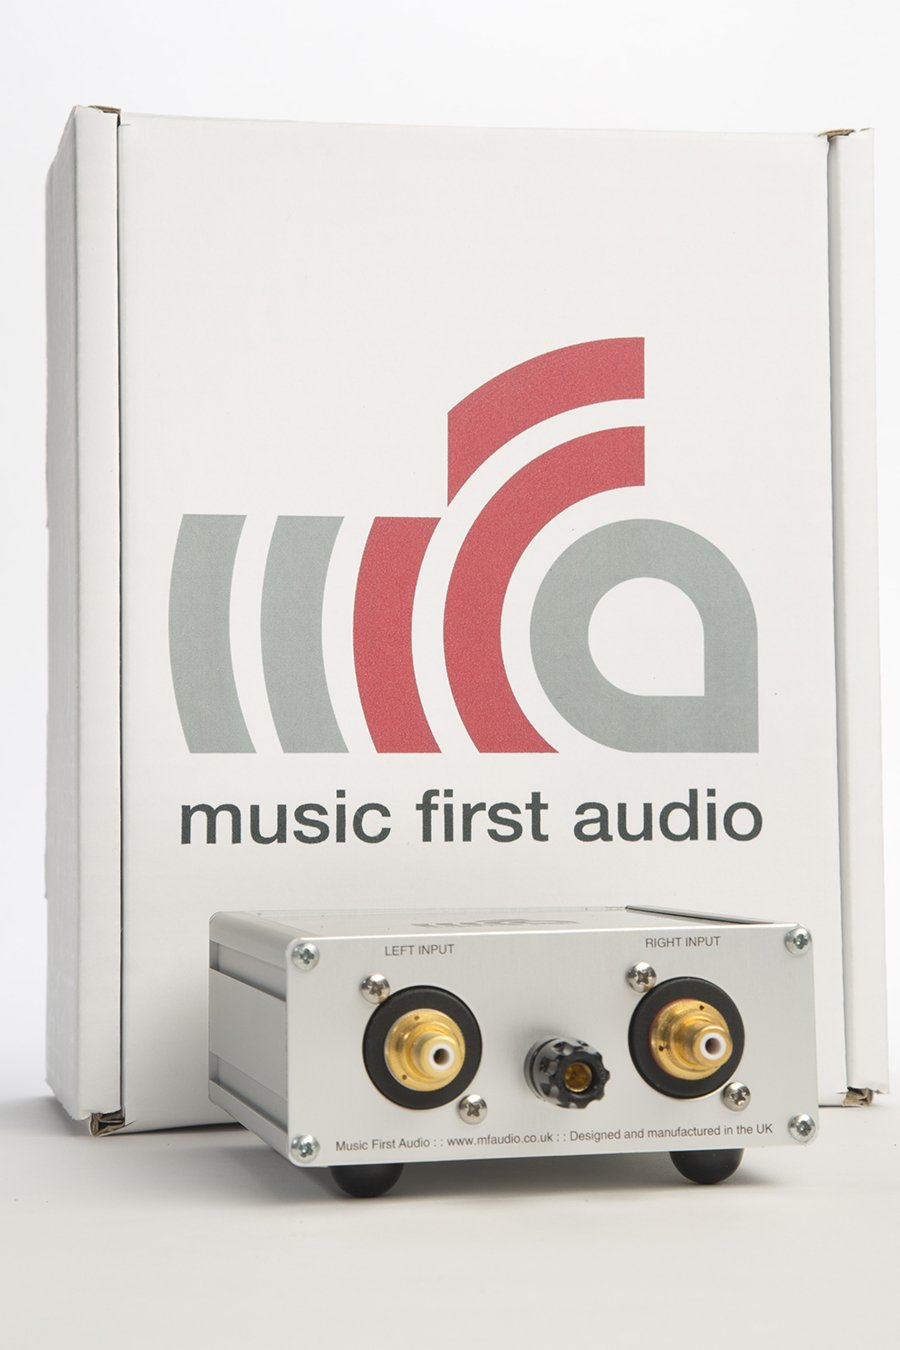 music_first_audio_behind_the_brands_2_online